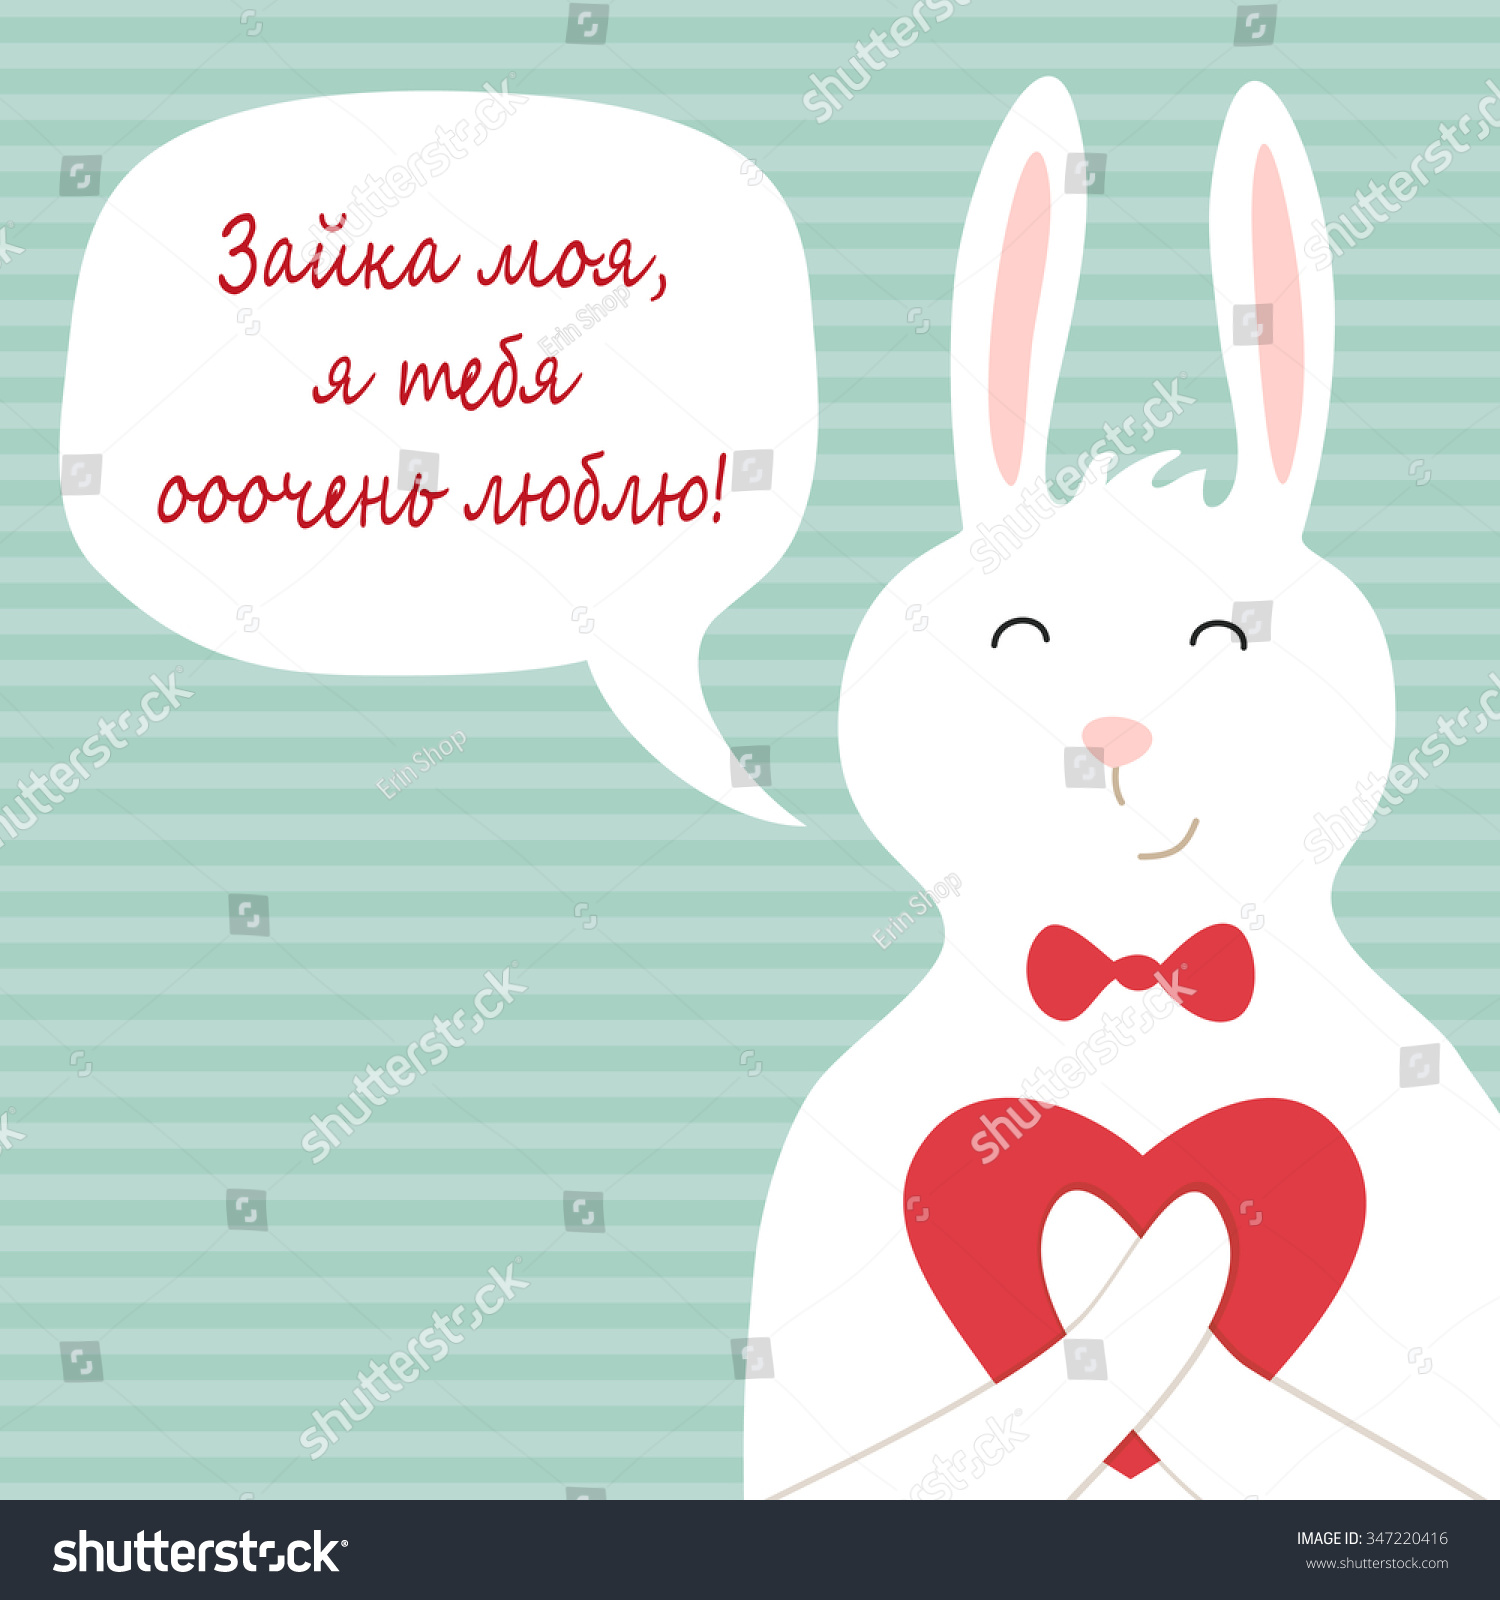 Cute Vintage Valentineu0027s Day Card With Bunny, Heart And Speech Bubble With  Note Some Bunny